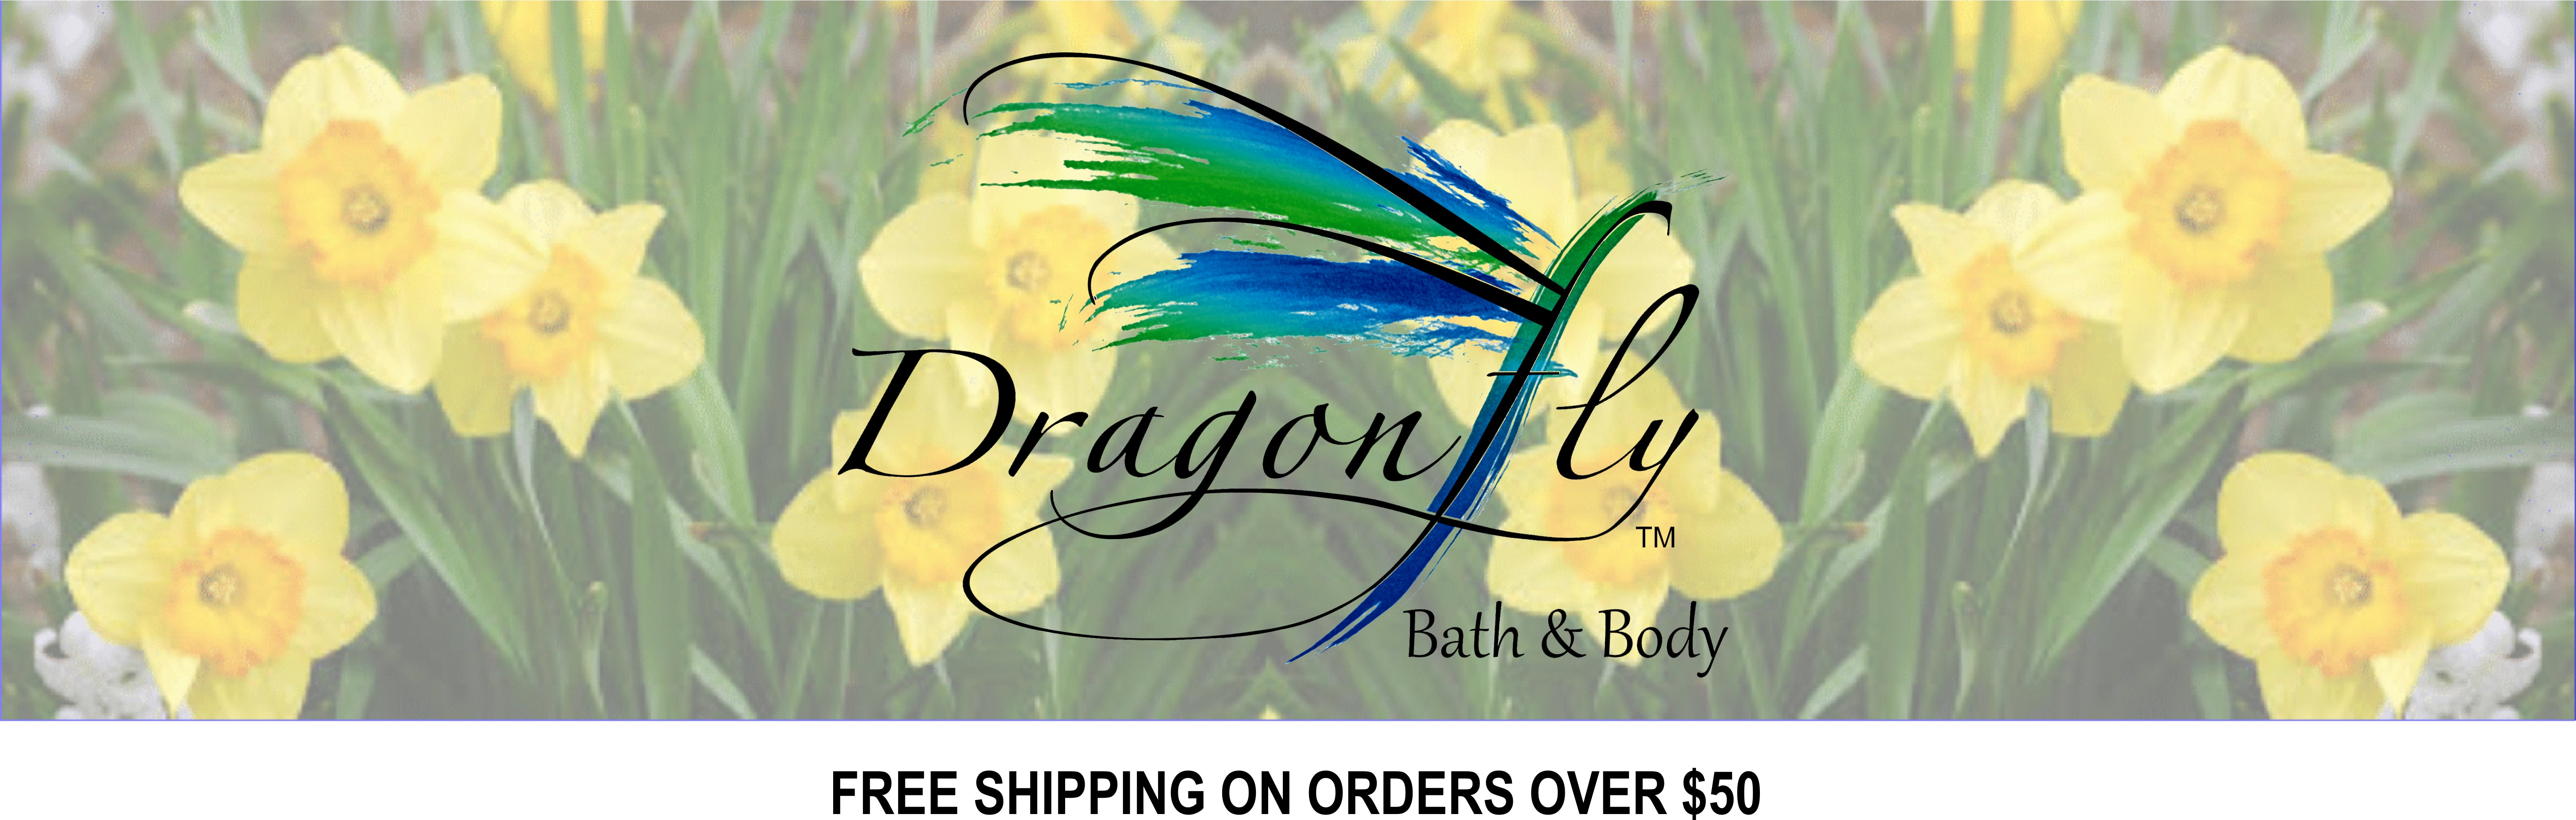 Dragonfly Bath & Body, LLC